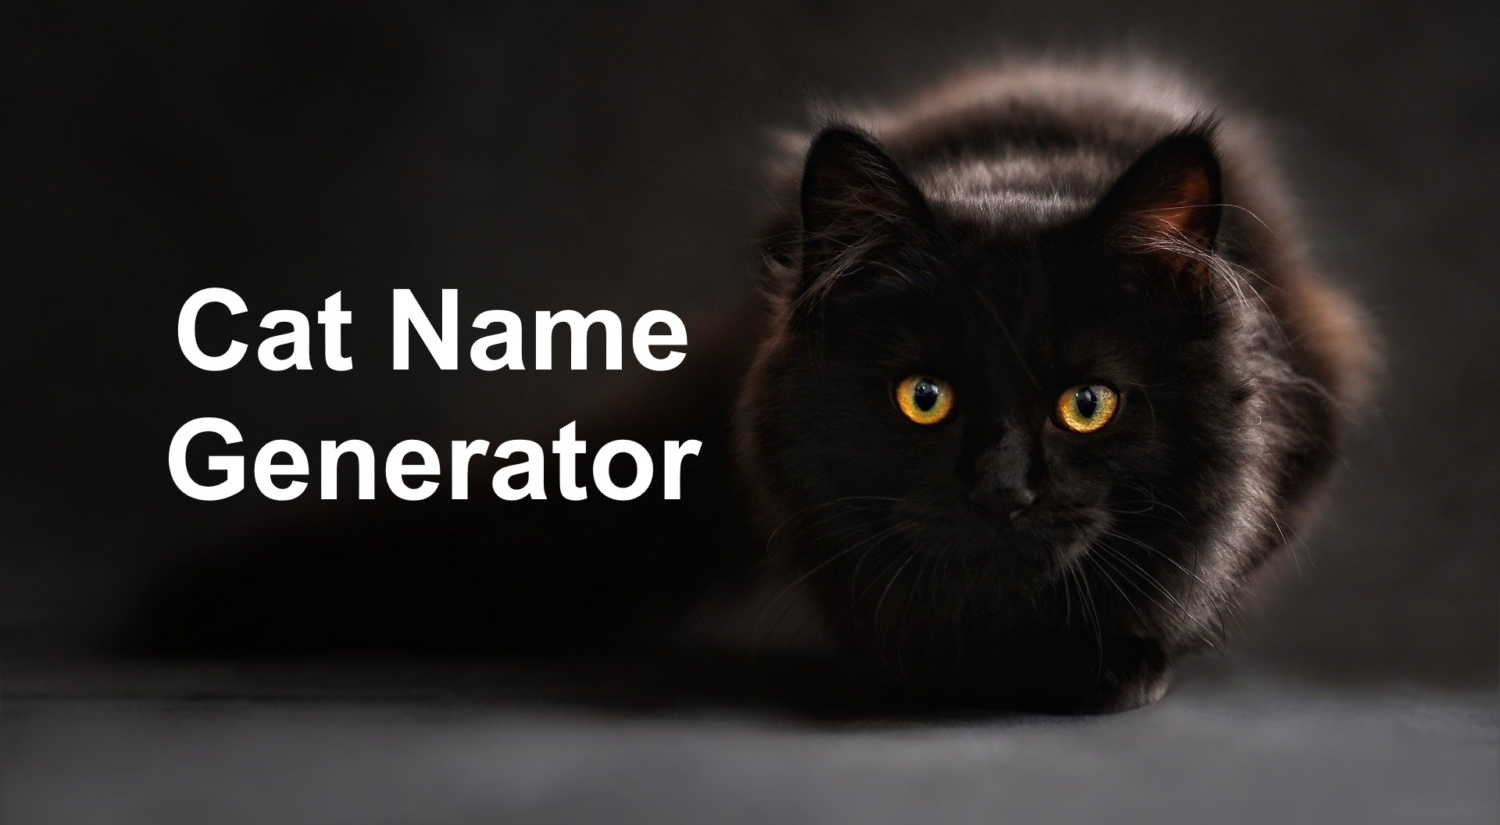 Cat Name Generator Image